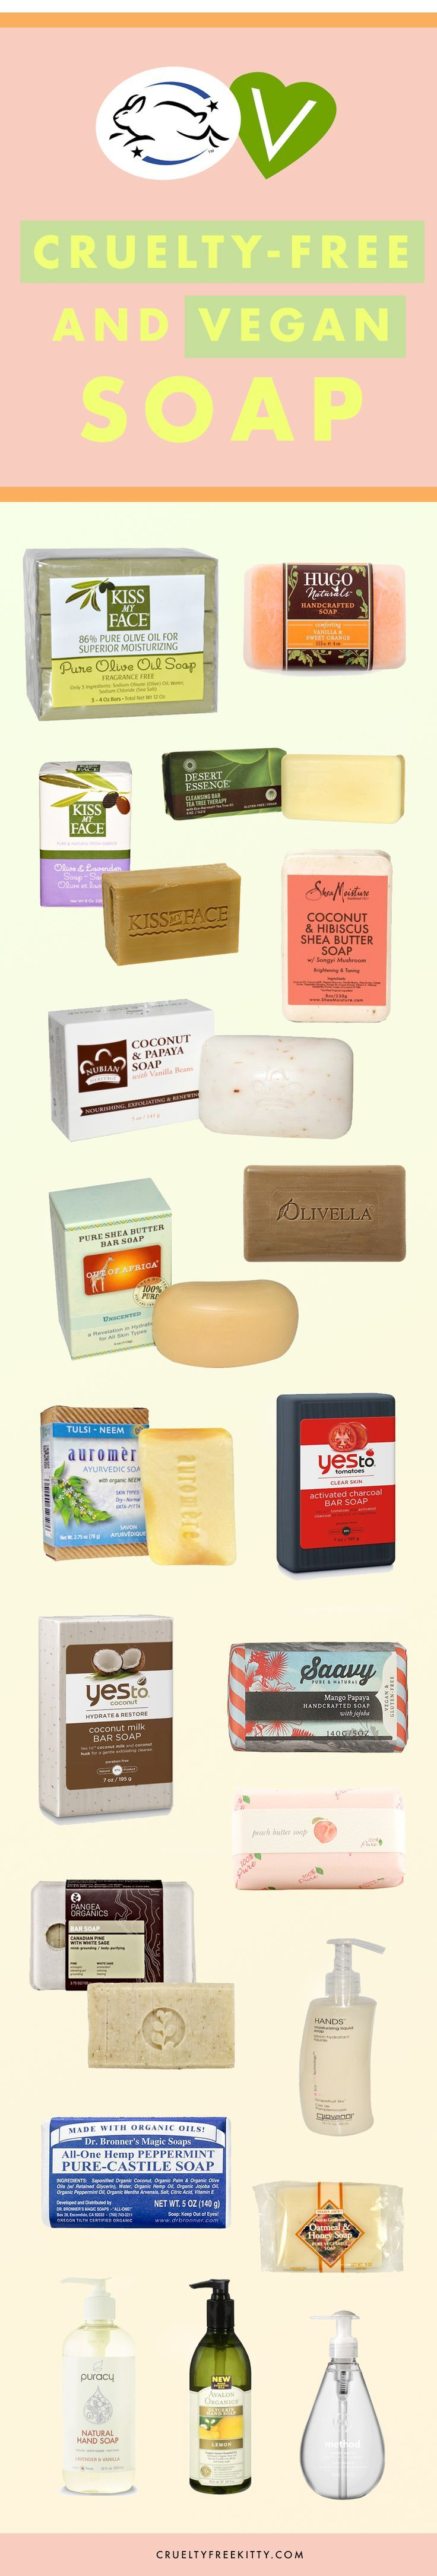 These cruelty-free and soap brands are animal-friendly and easy to find in stores.